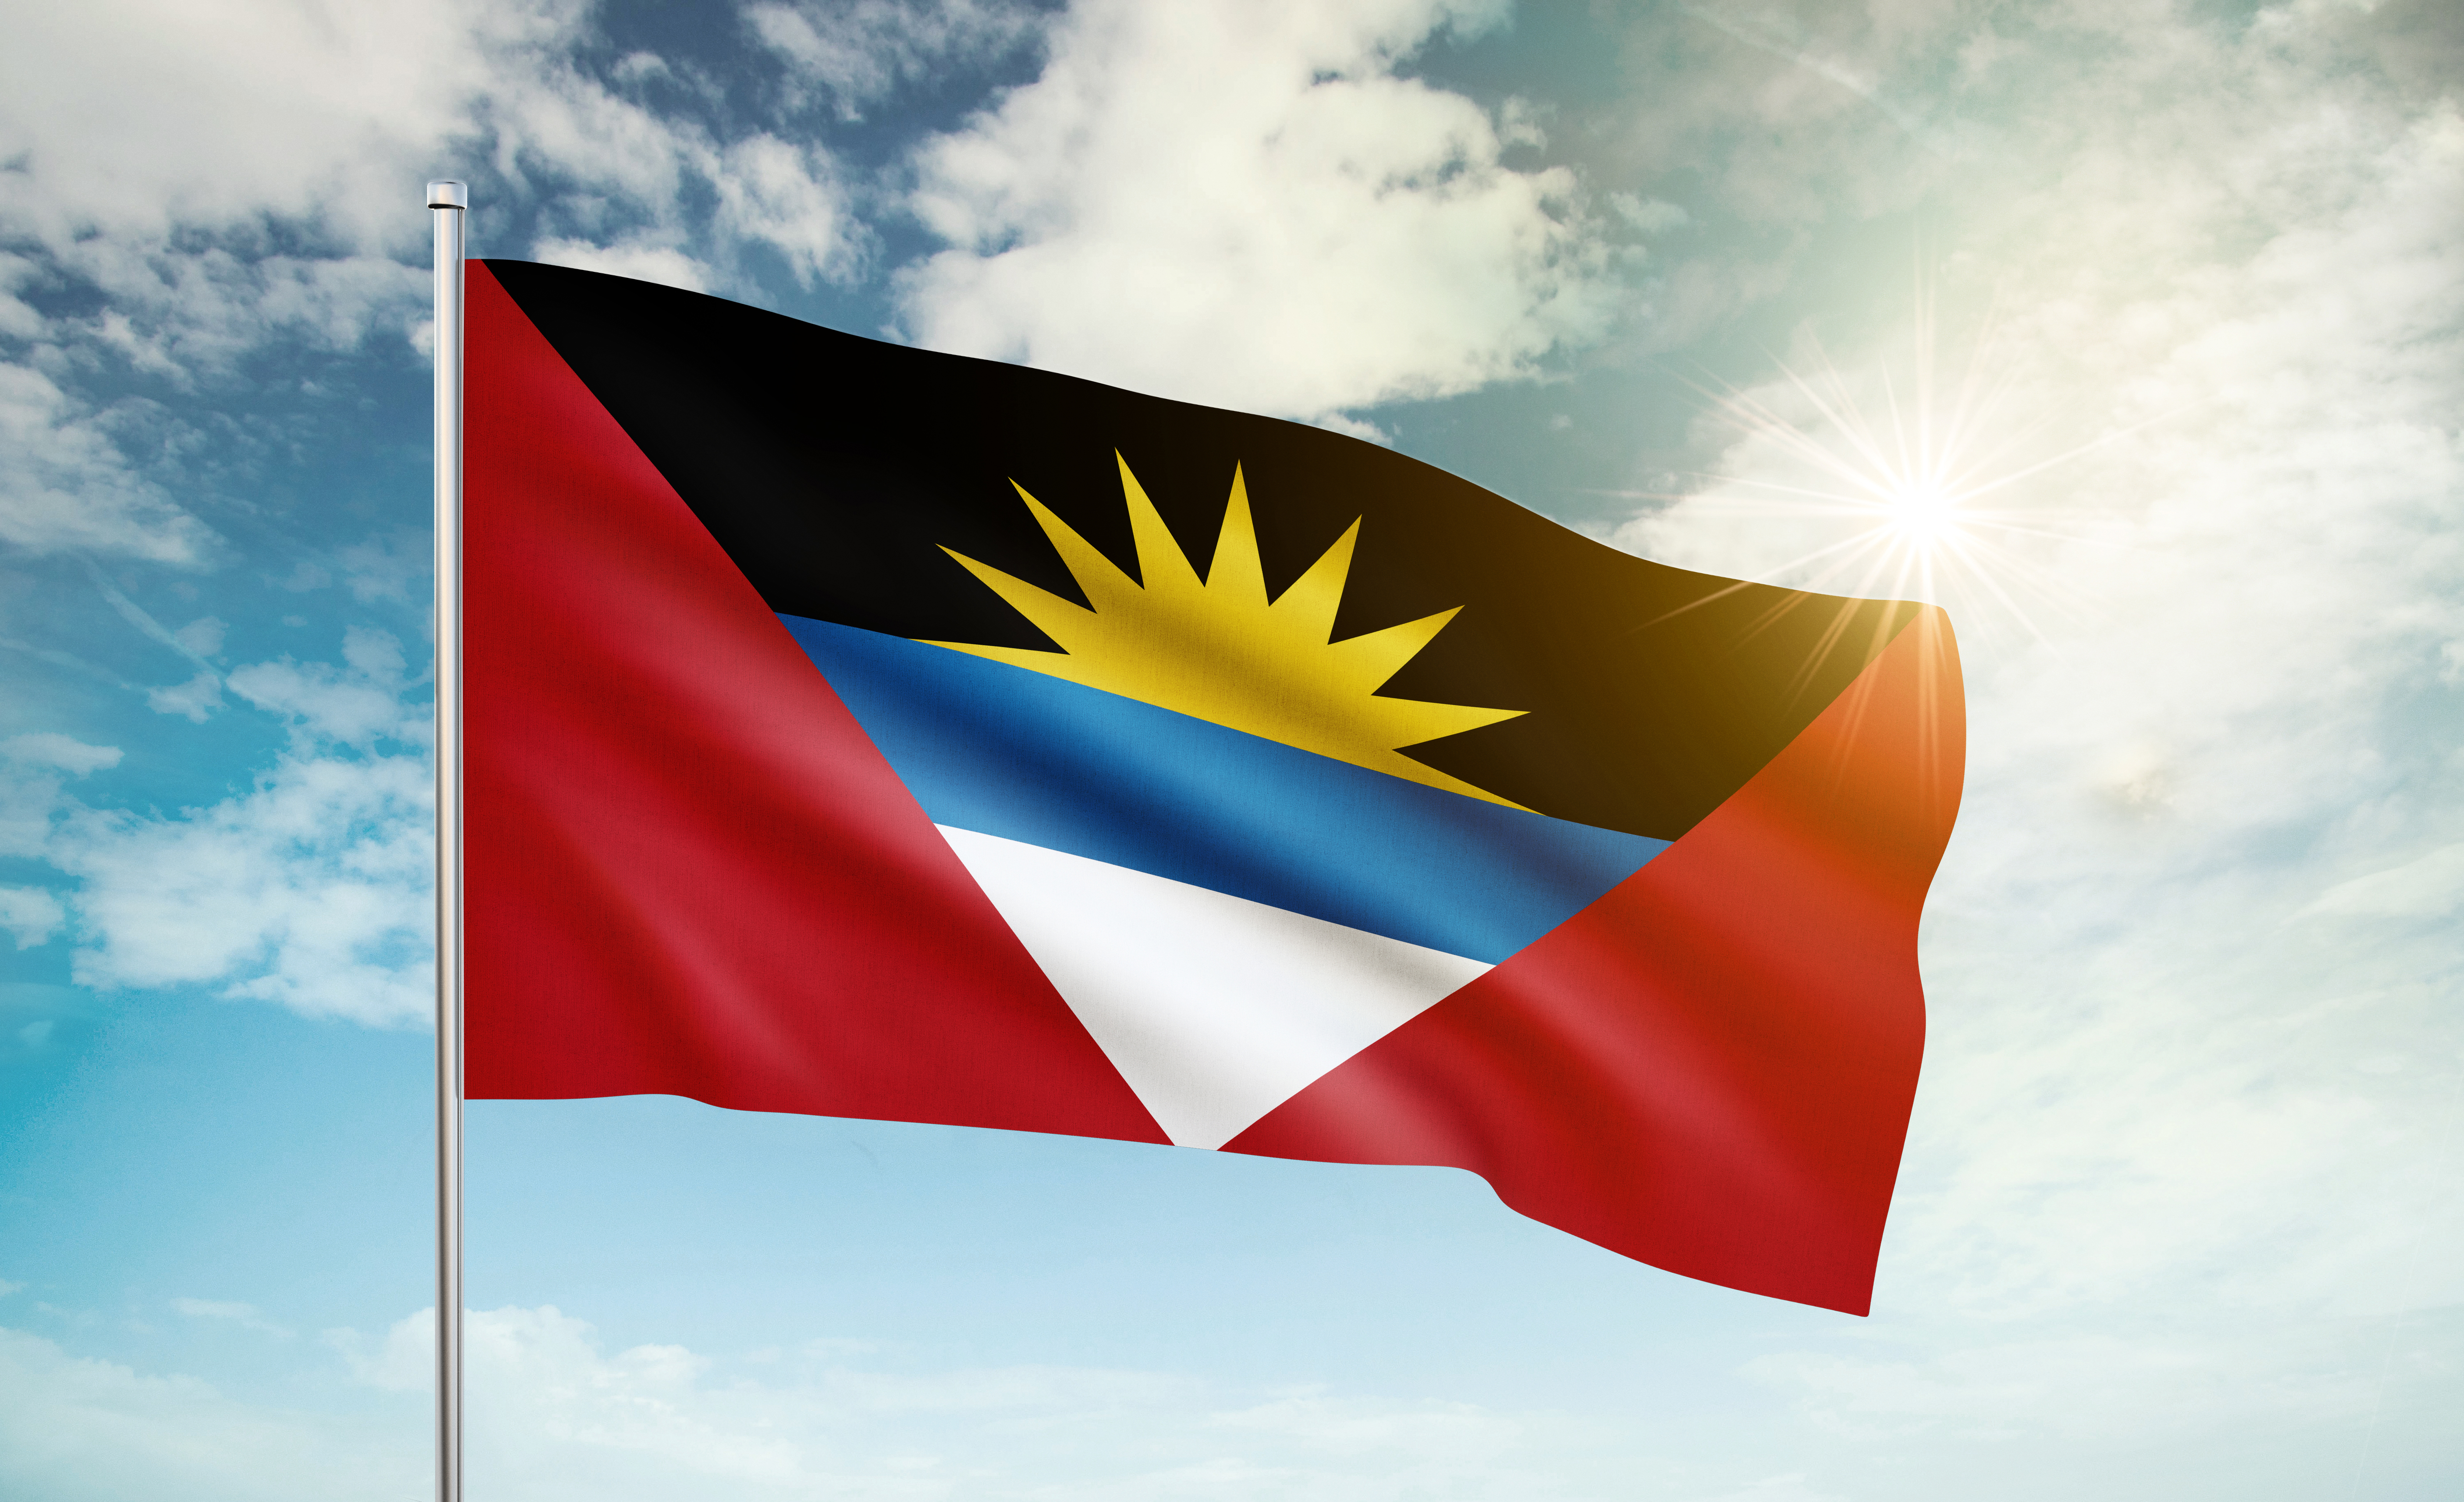 Flag of Antigua and Barbuda, which symbolizes the citizenship of the Caribbean islands